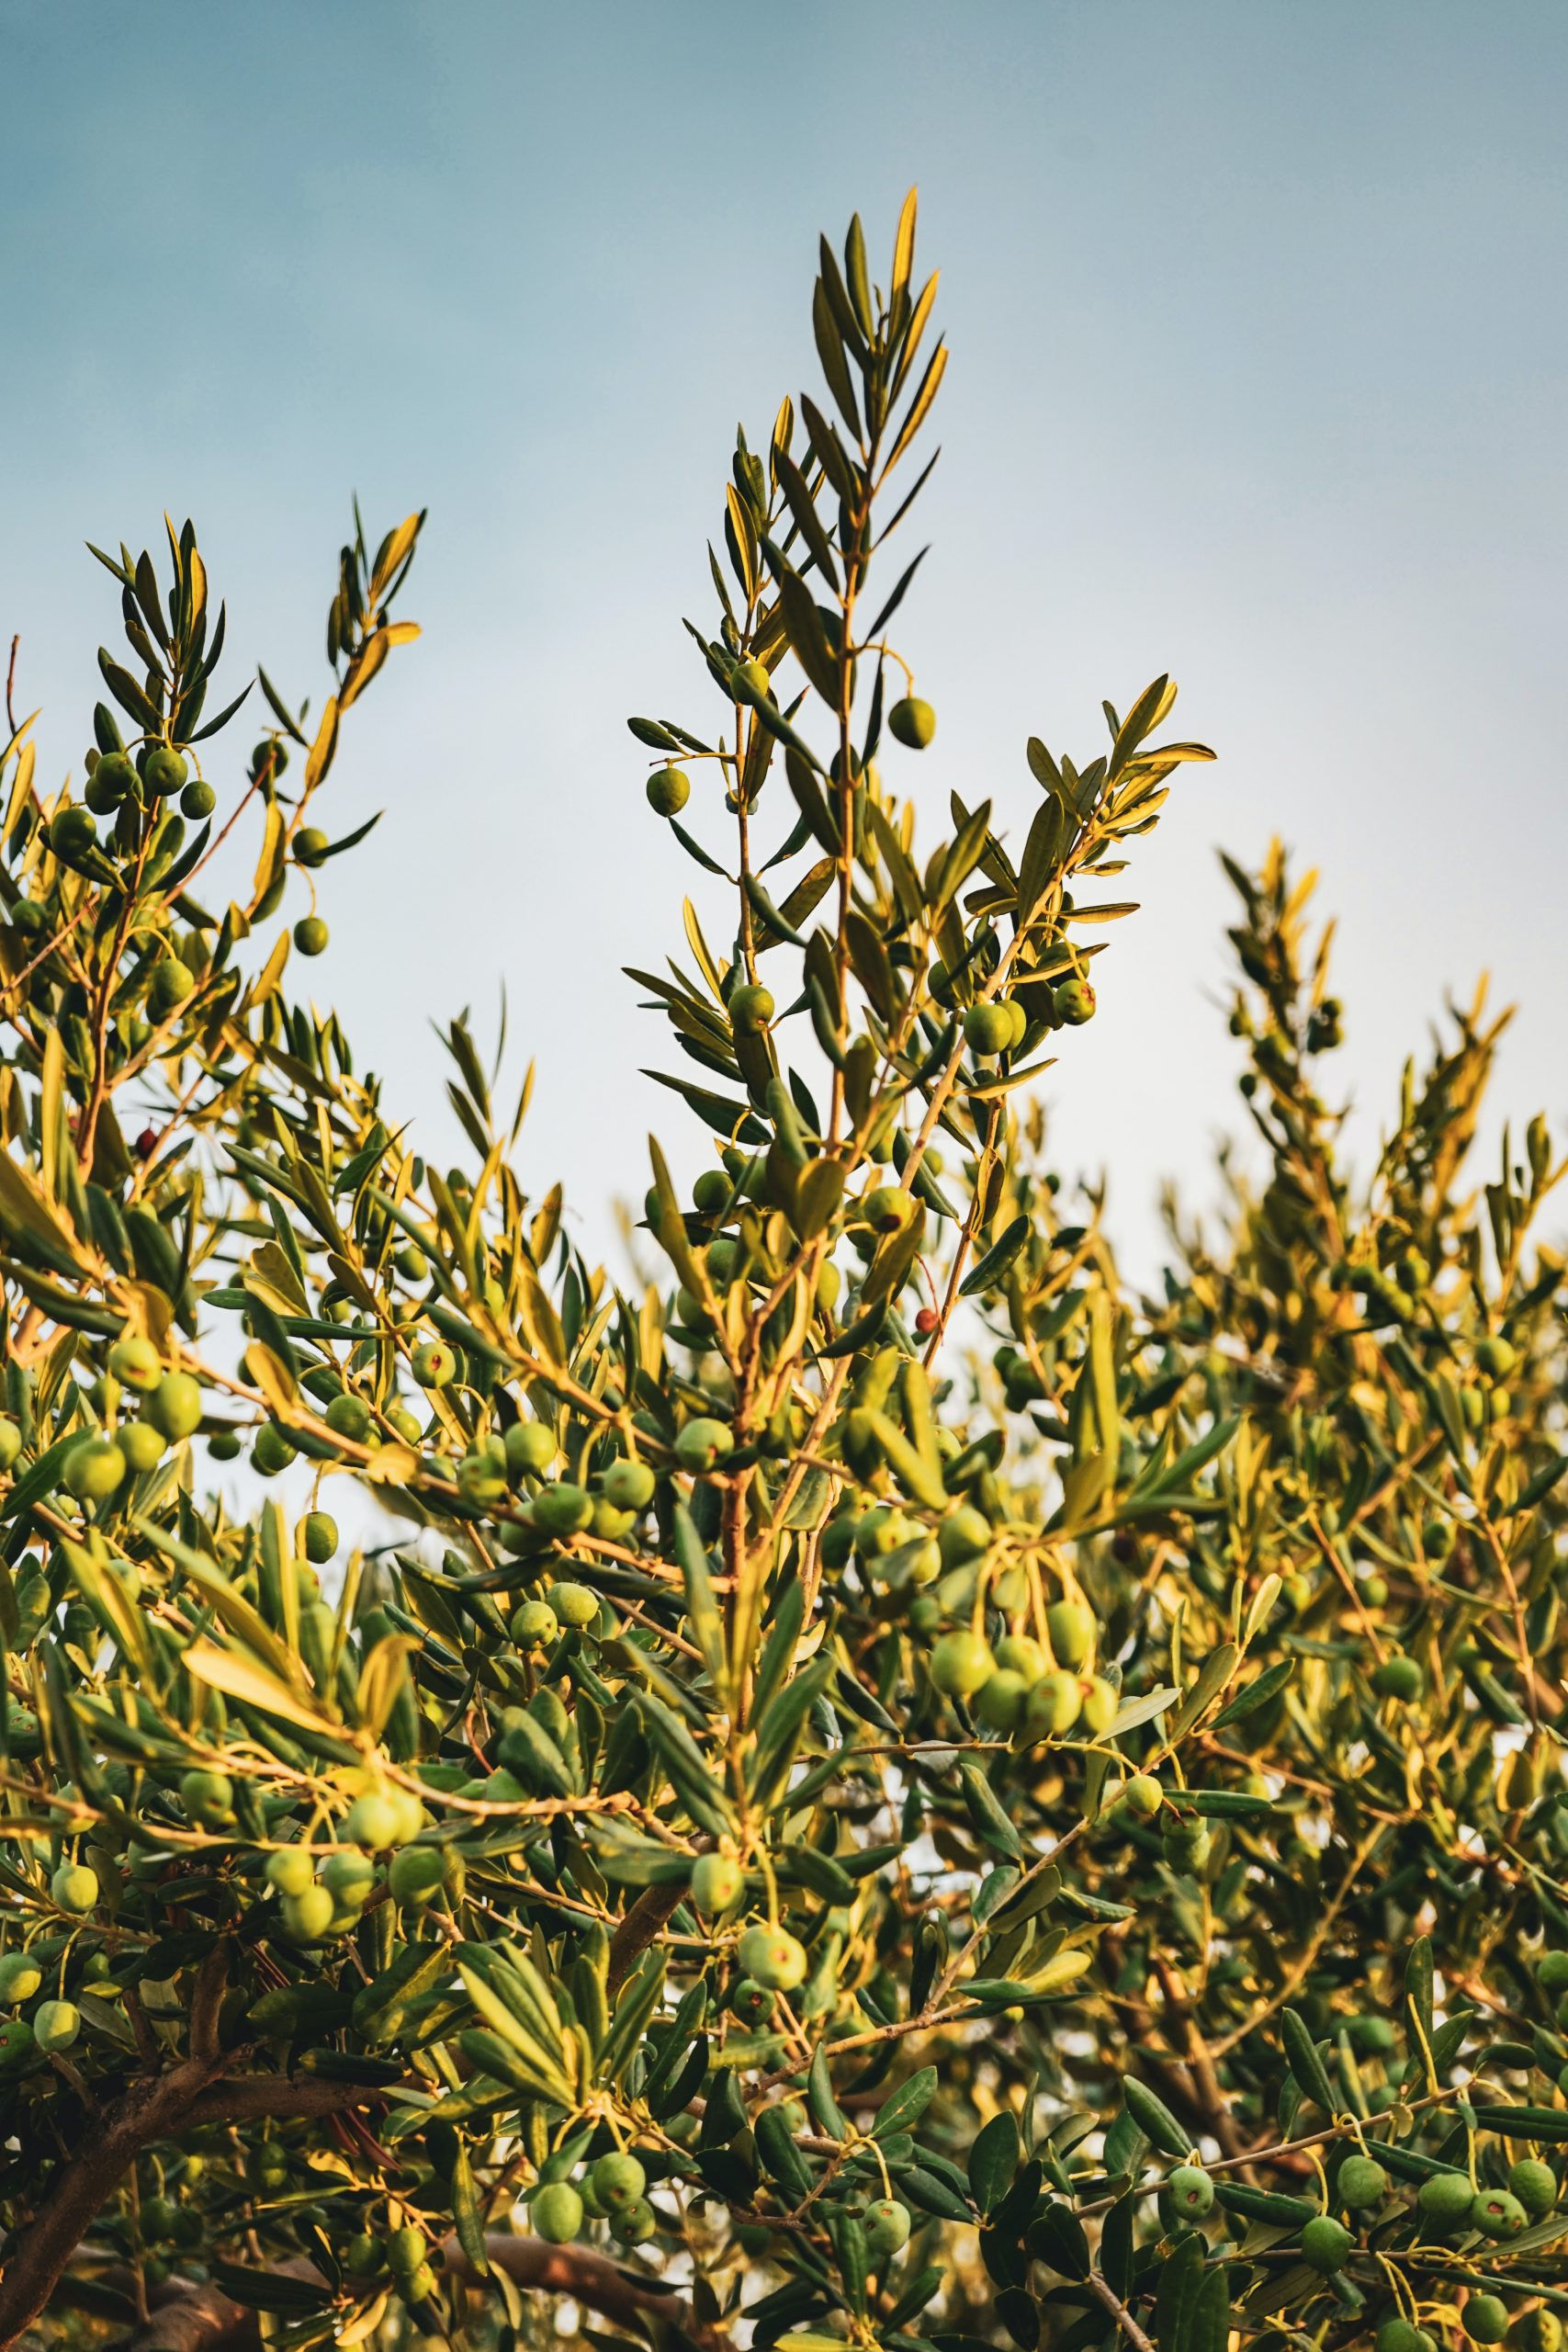 Olives on branches in the wind with a blue sky